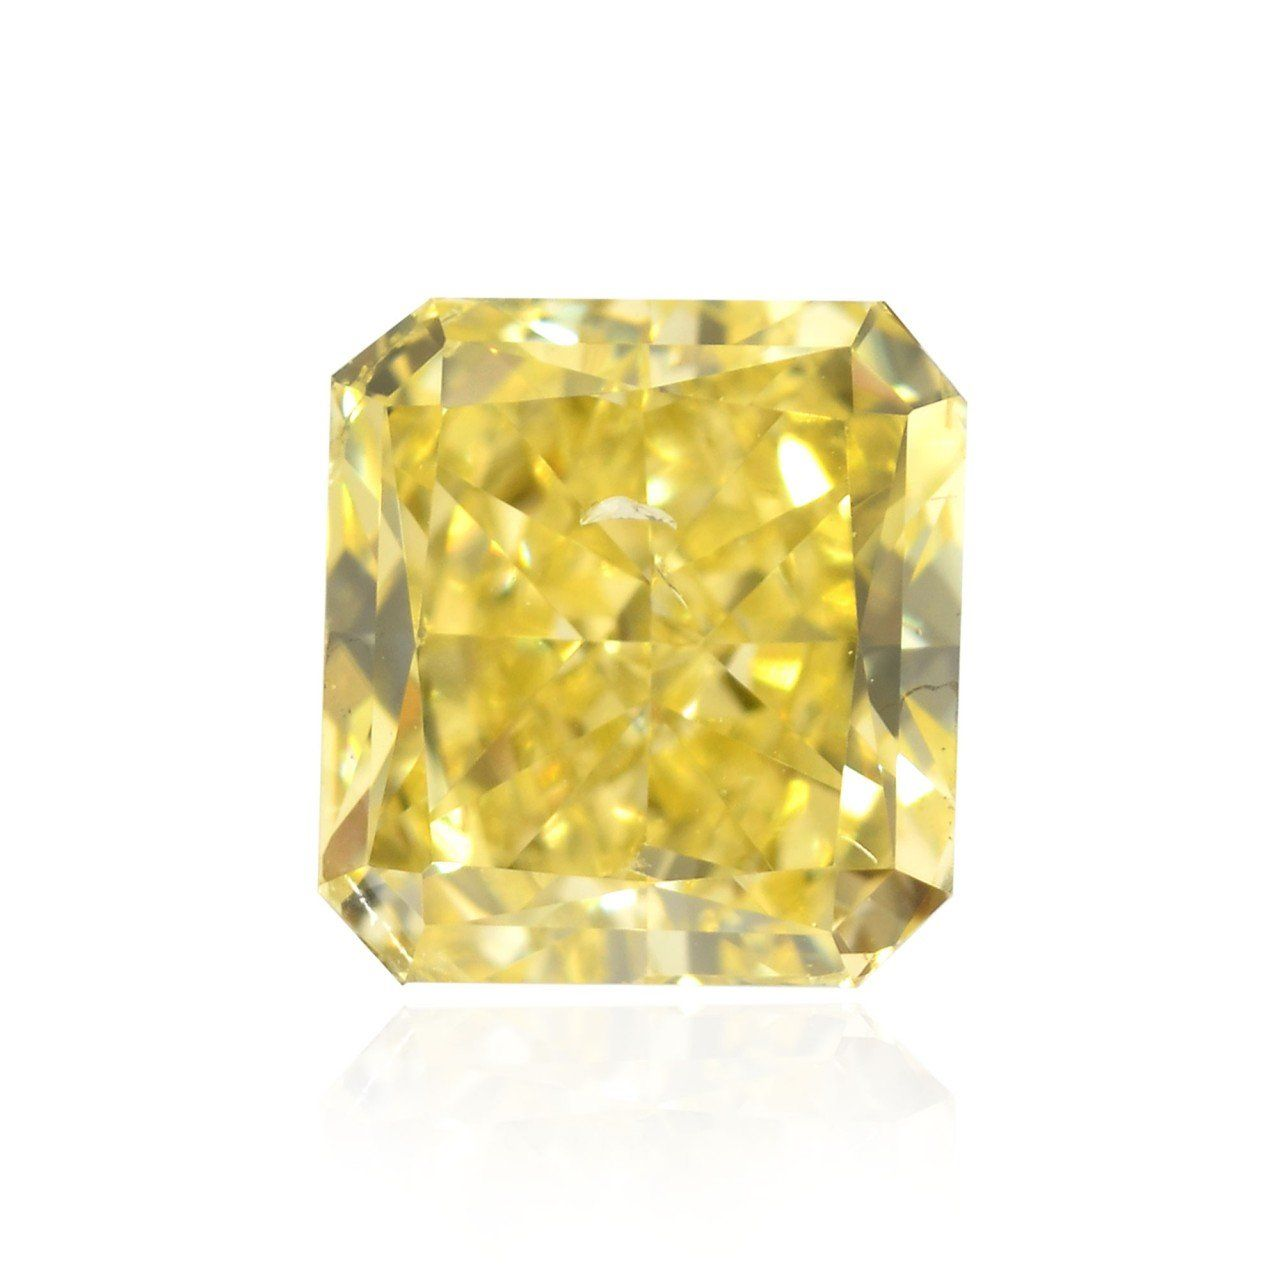 0.70Cts Fancy Yellow Loose Diamond Natural Color Radiant Shape GIA Certified